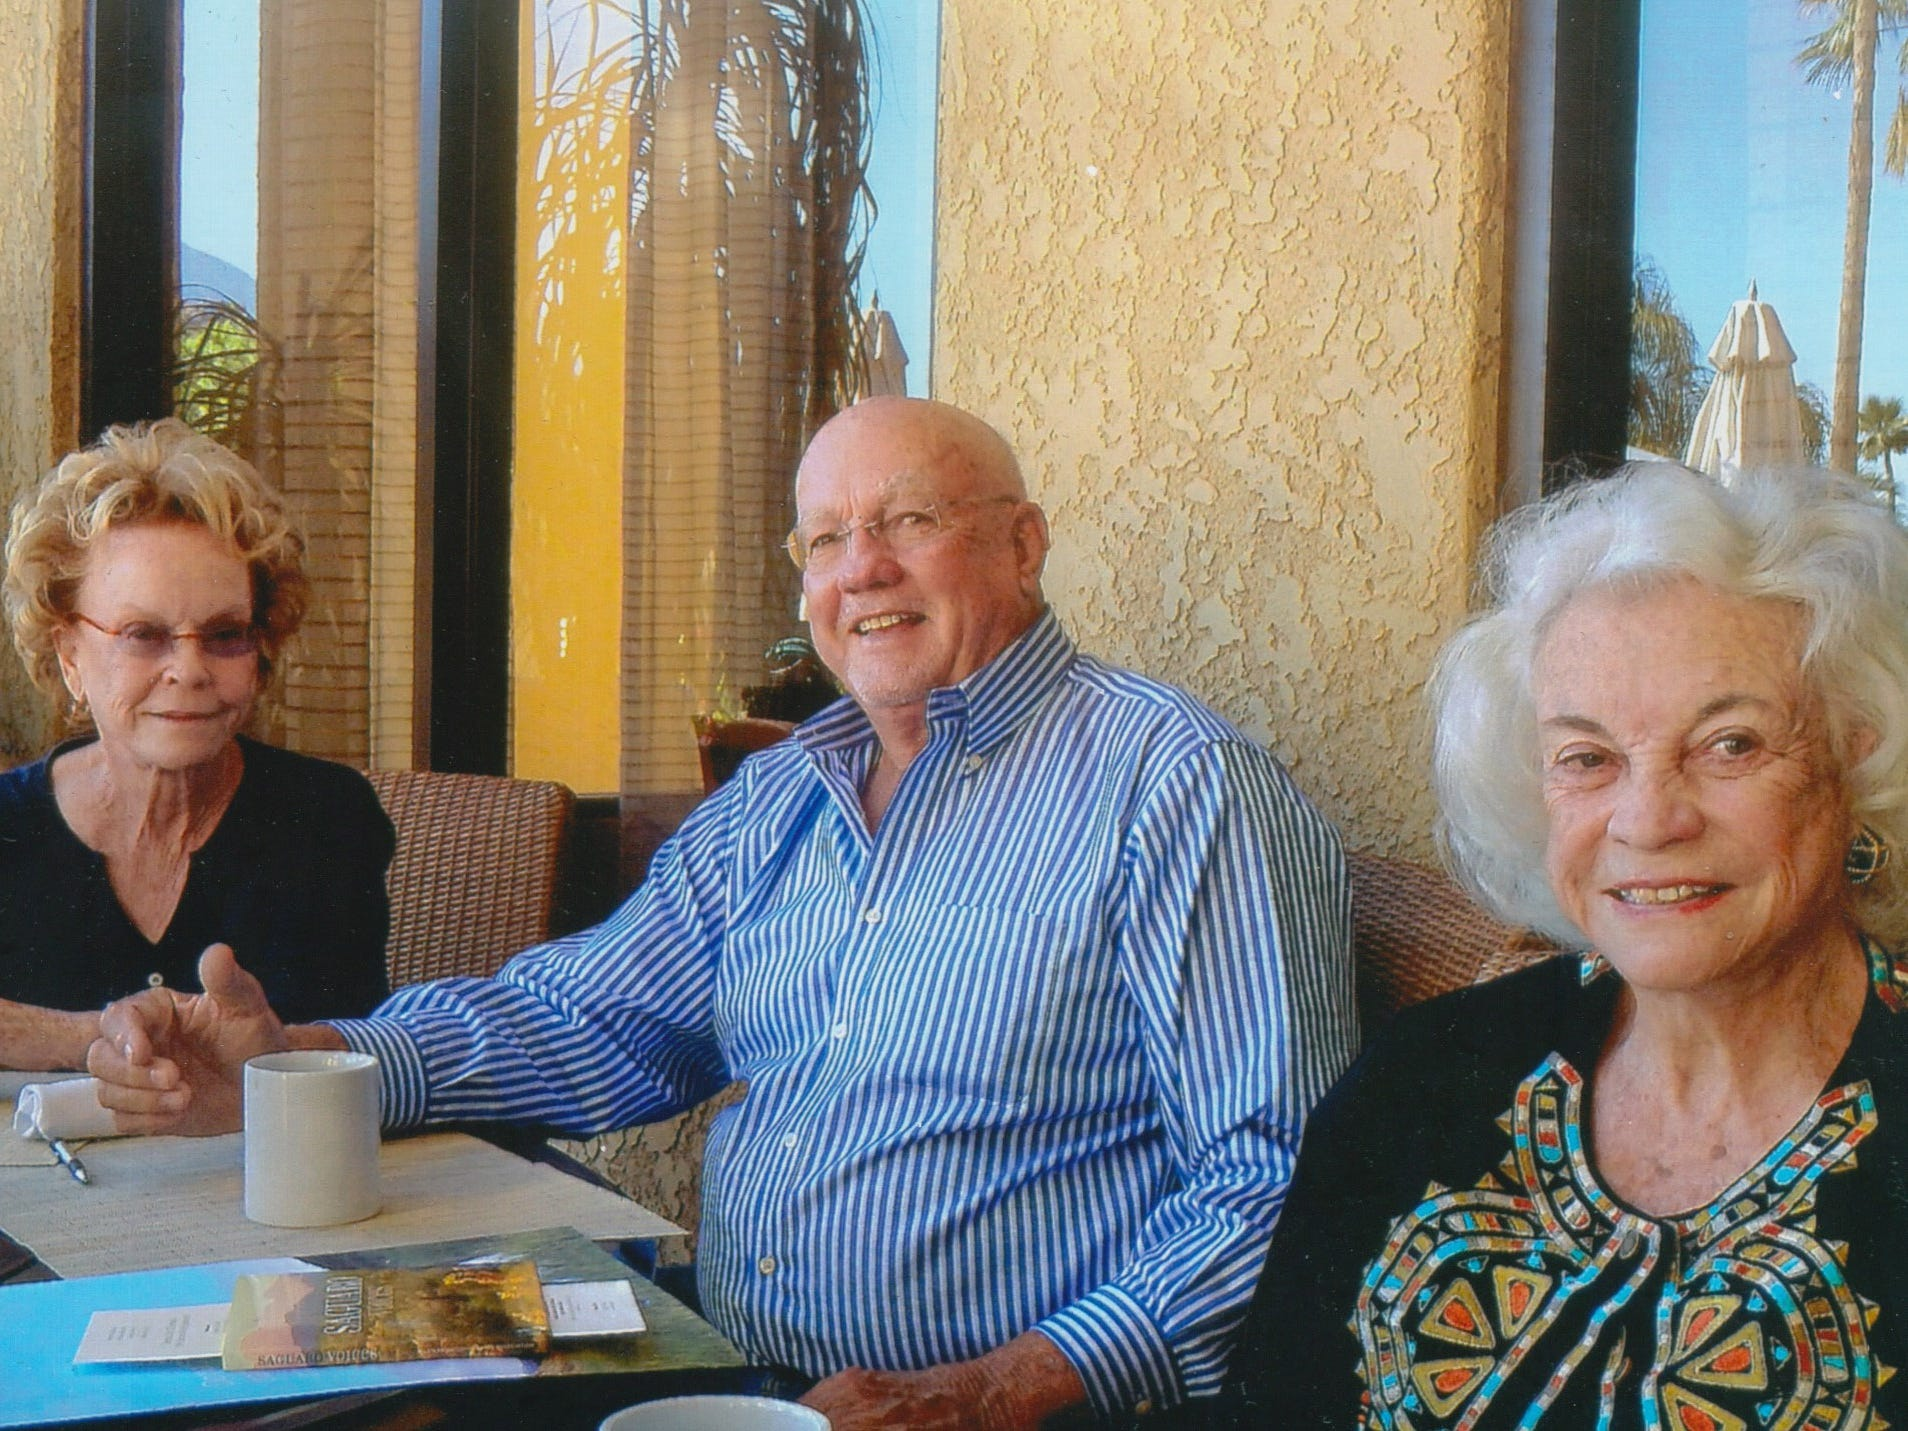 Sandra Day O'Connor (right) with her brother, Alan Day, and sister, Ann Day.